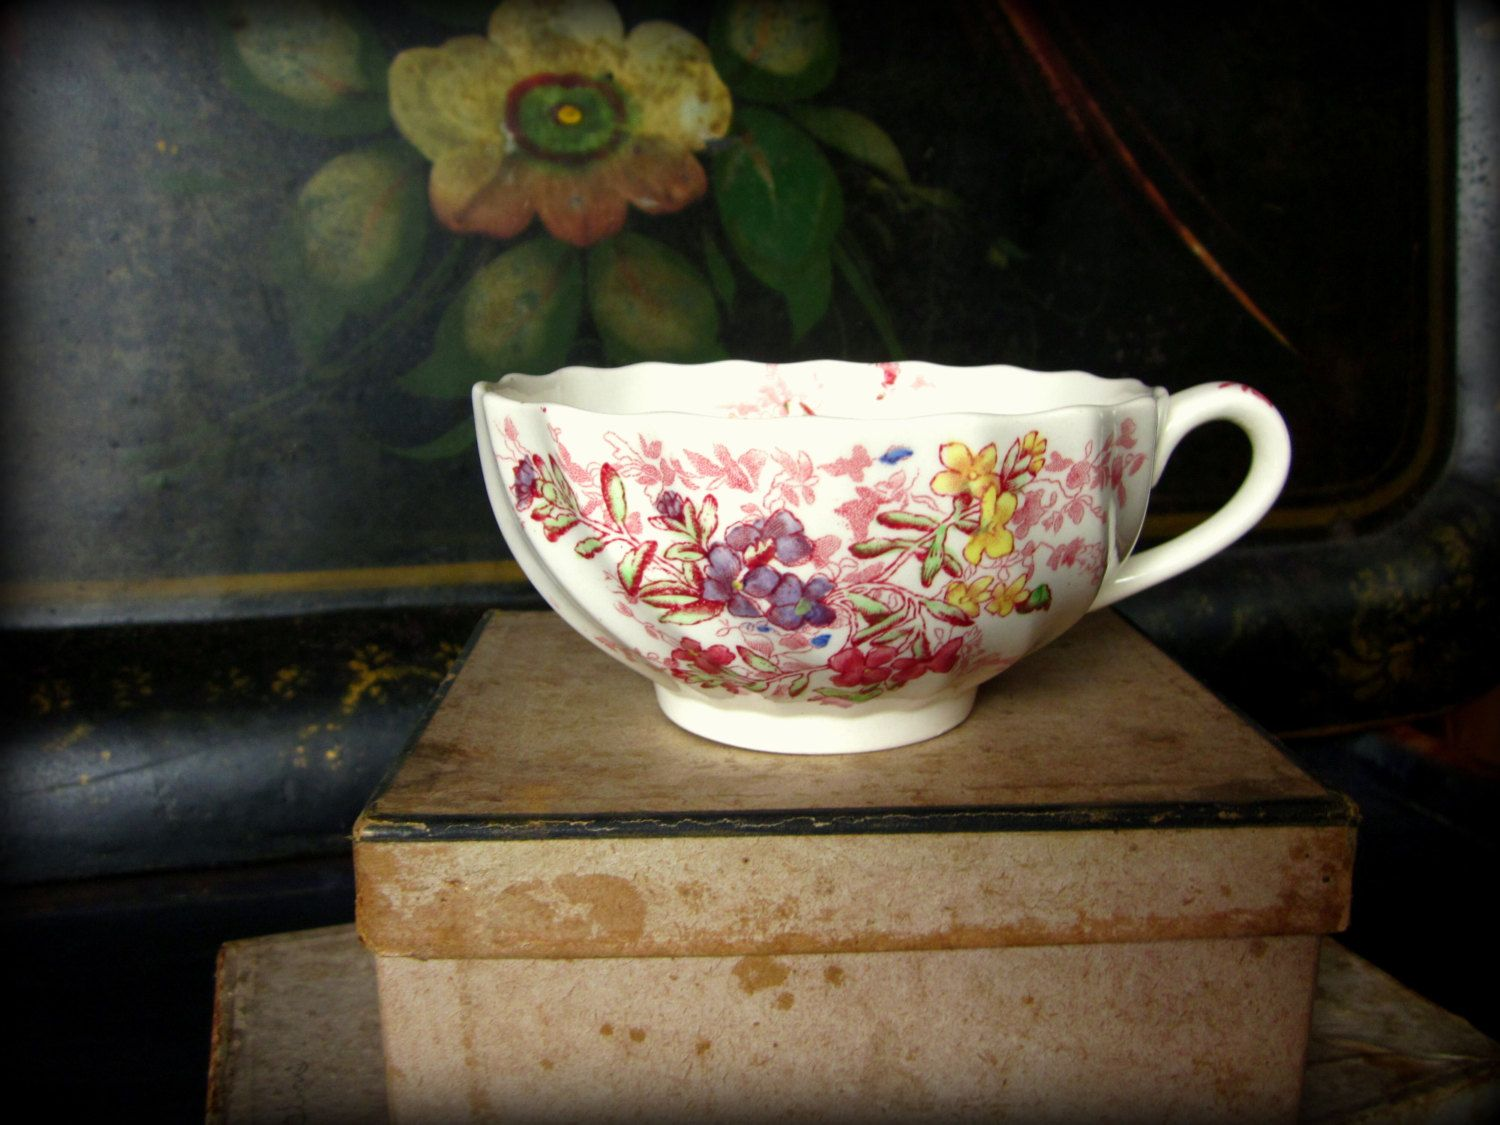 Vintage Teacup, Copeland Spode England Fairy Dell Teacup, Swirl Pattern, Bone China by GreenLeavesBoutique on Etsy